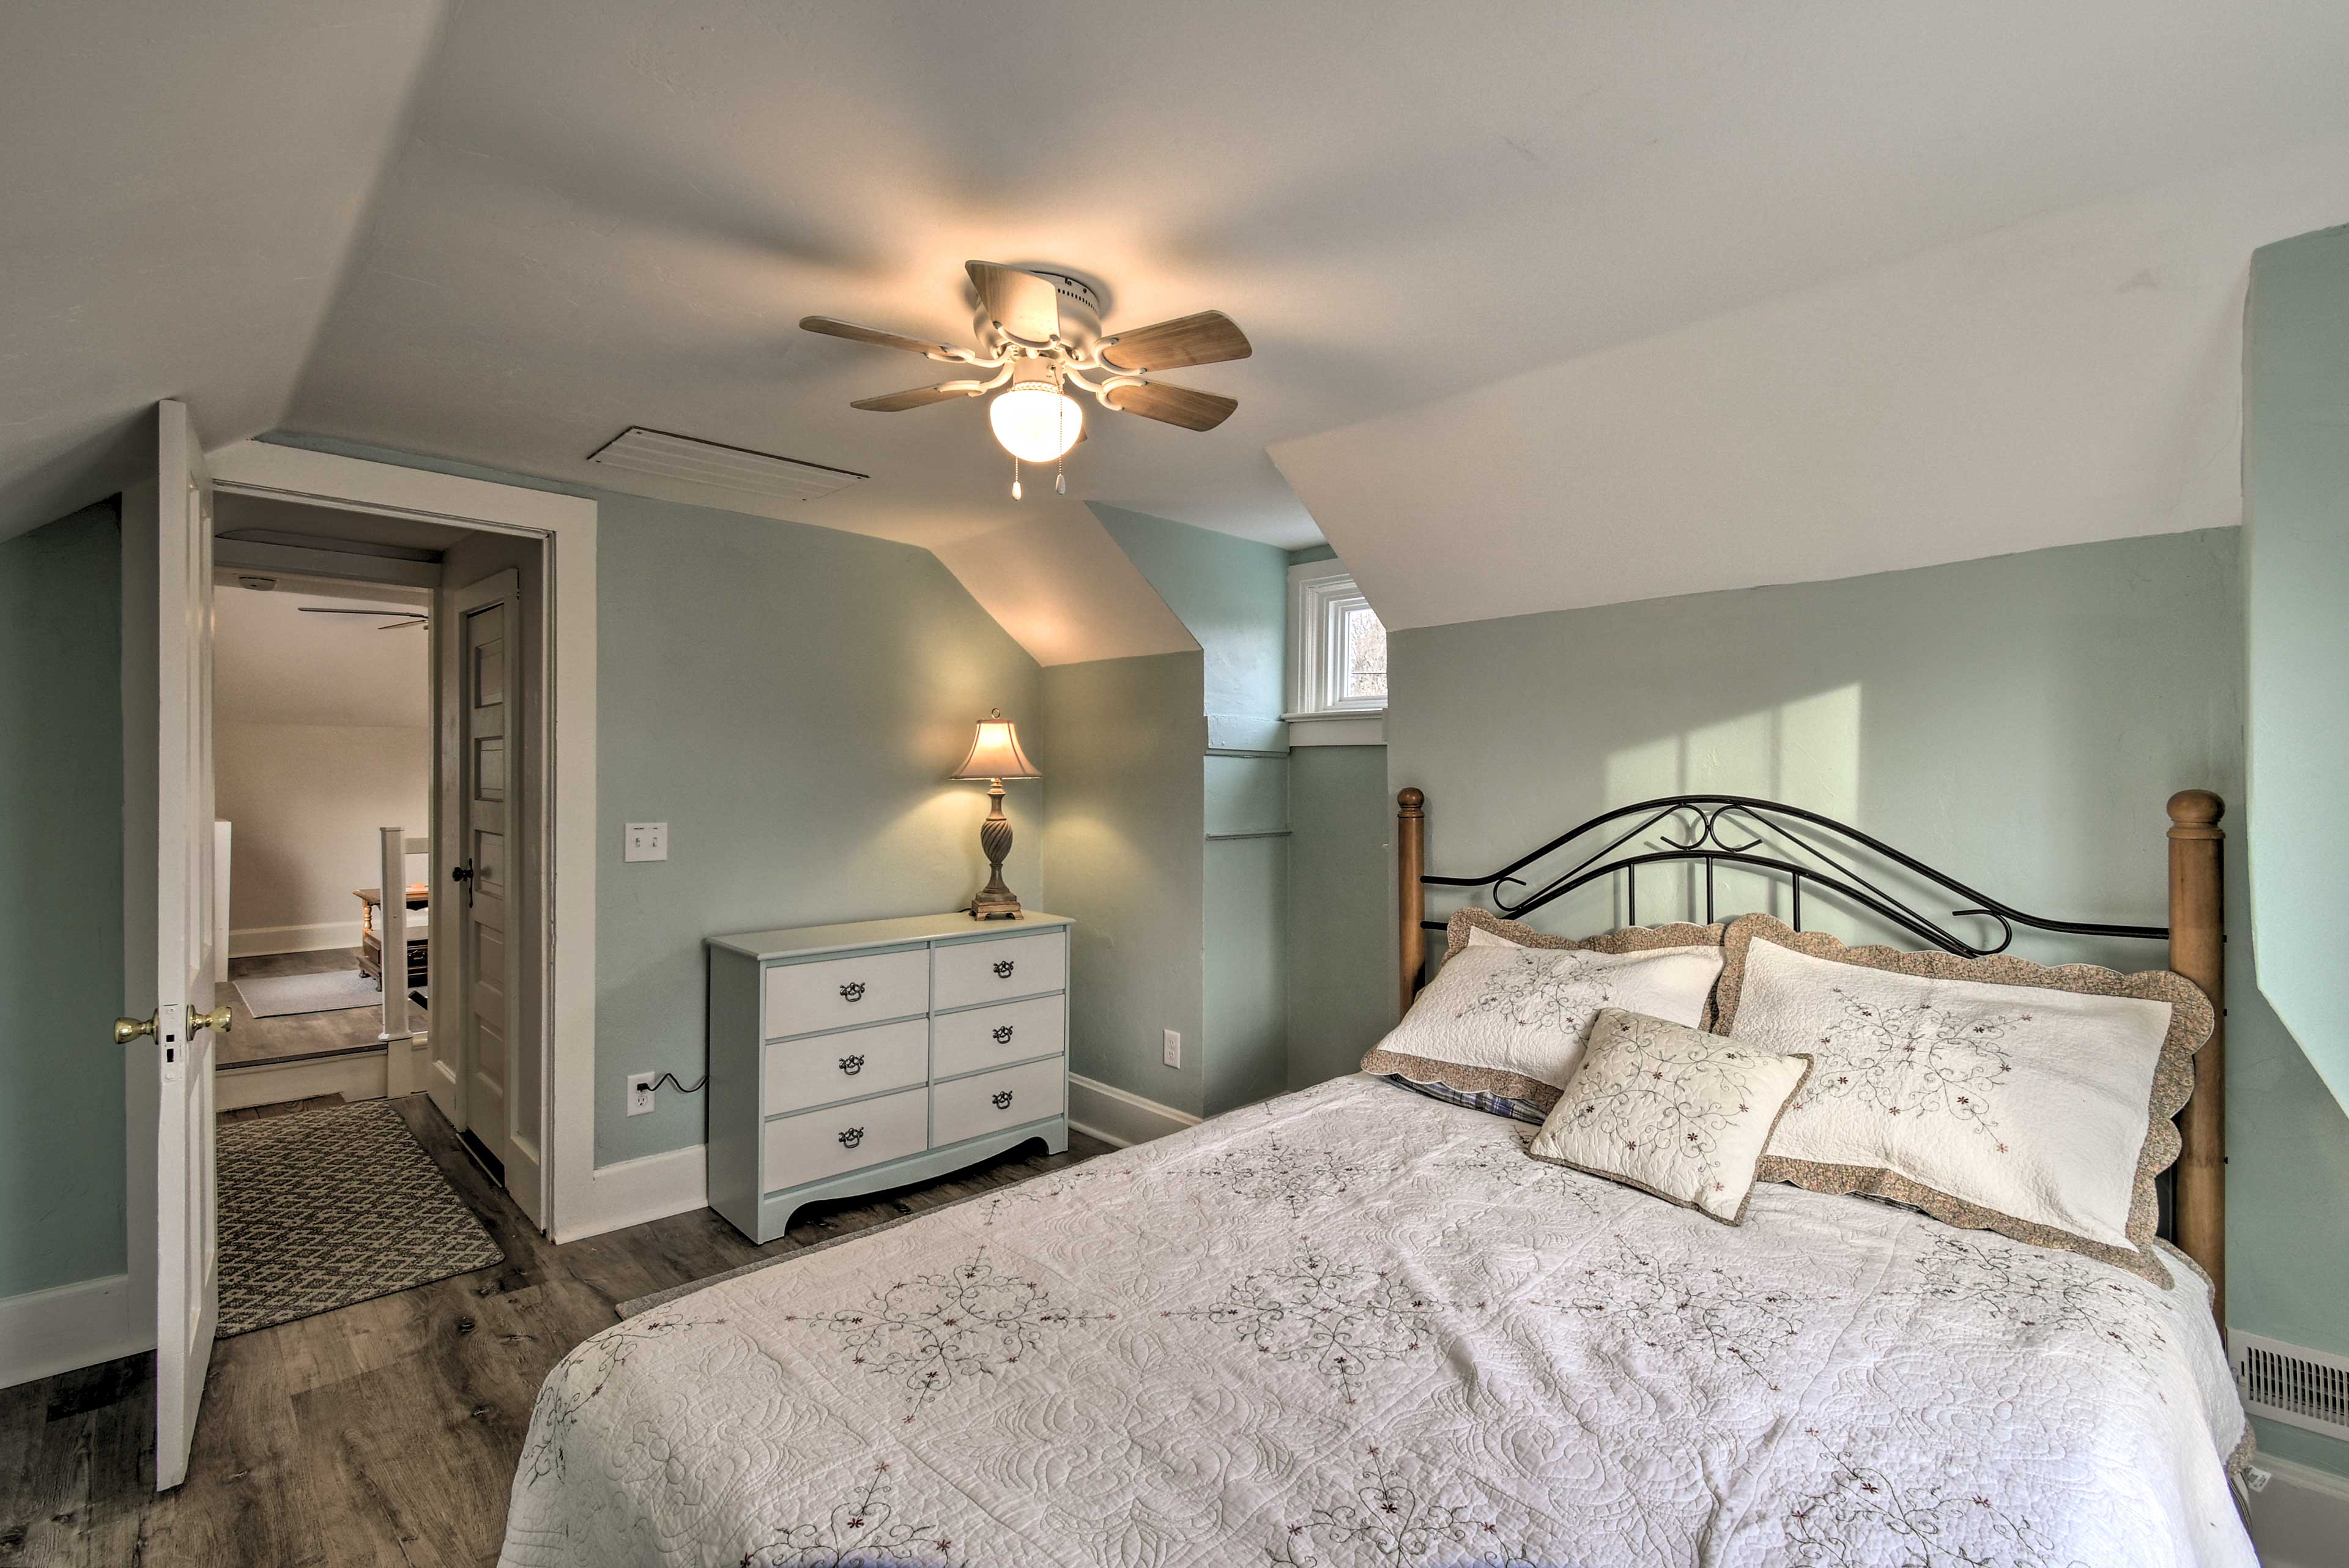 Put your clothes in the large dresser and feel right at home.